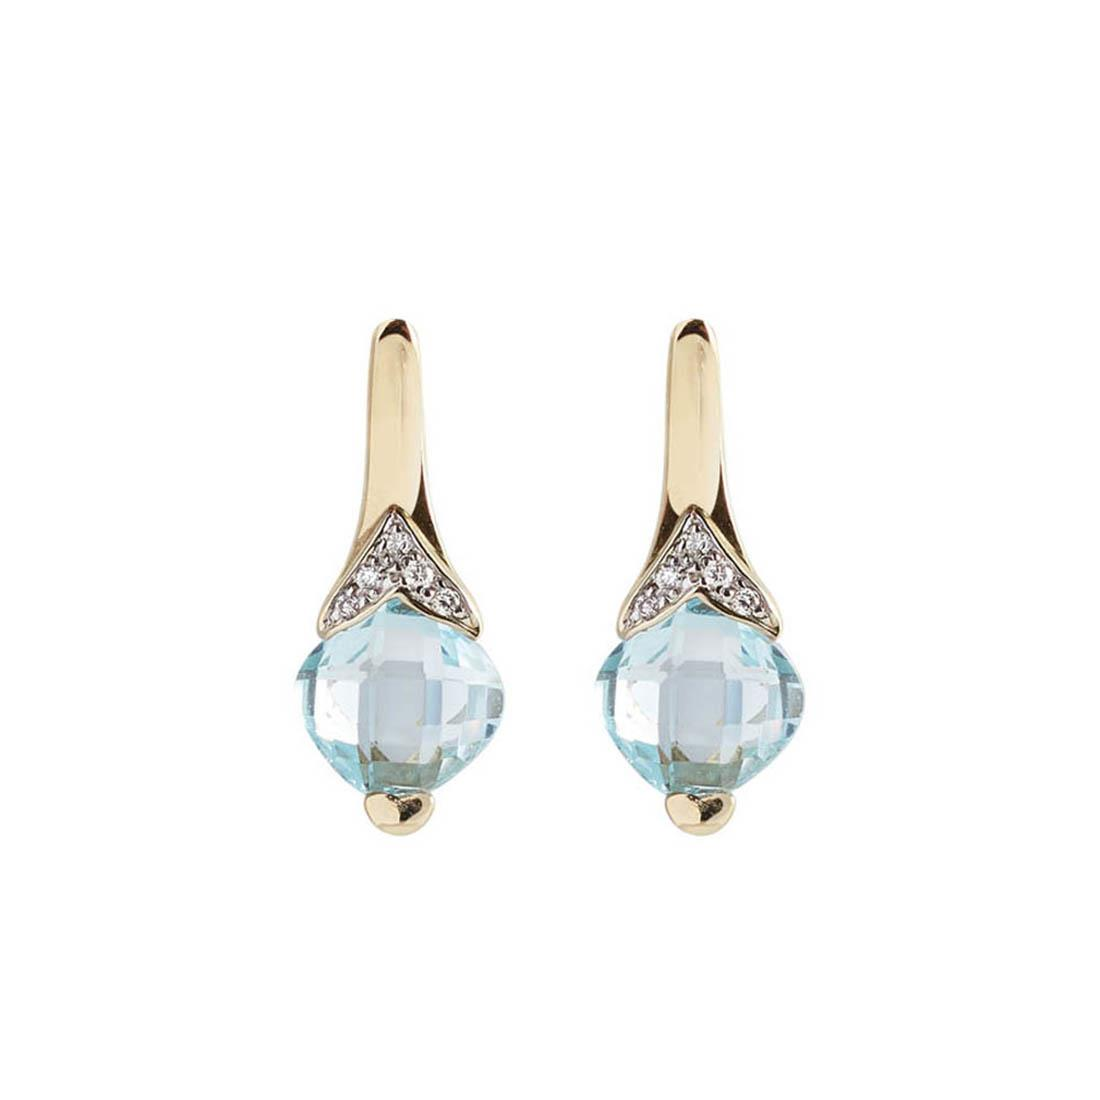 Yellow gold earrings with 6.00 ct square briolette cut light blue topaz and 0.07 ct diamonds.